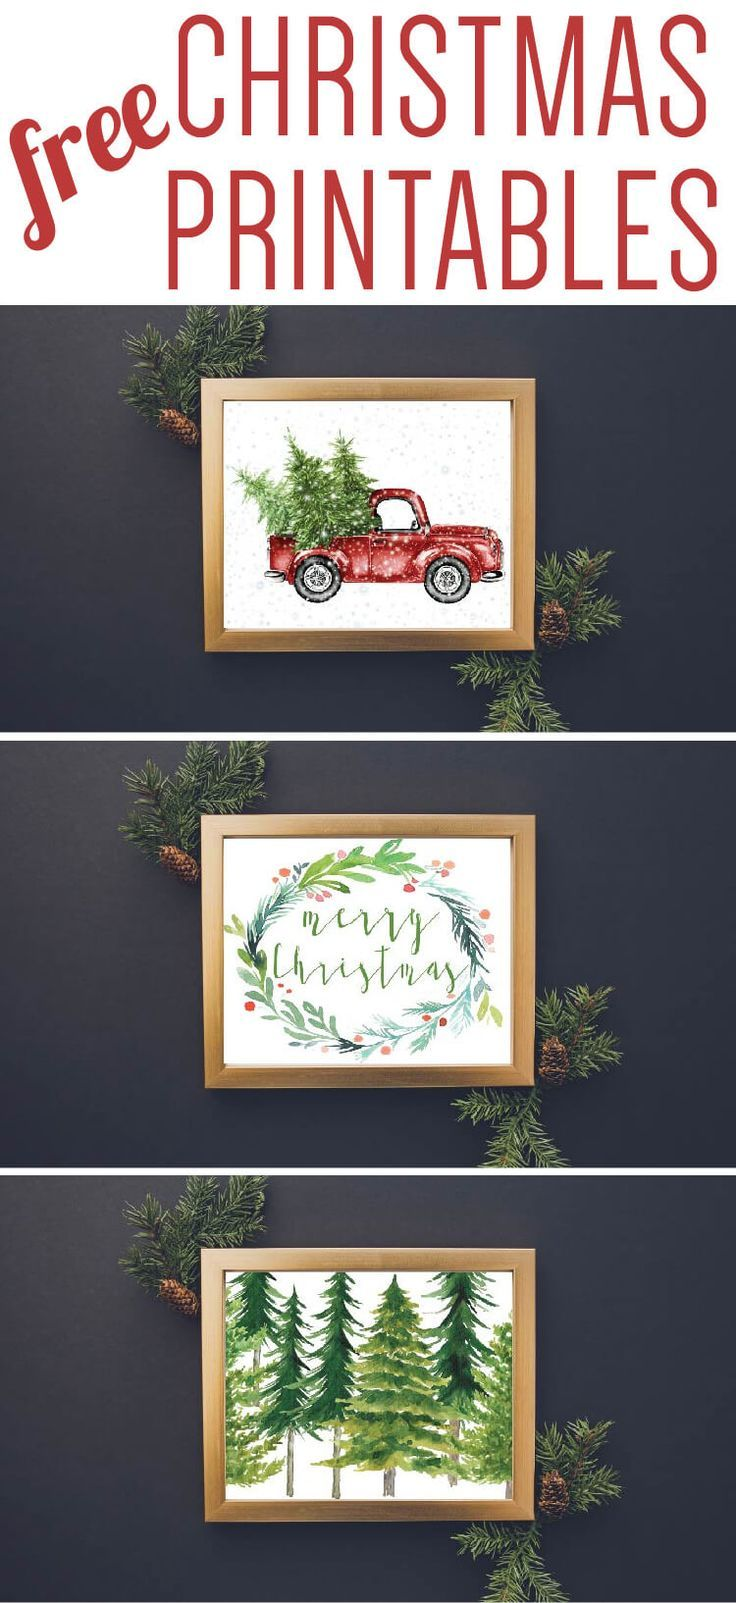 Free Christmas printables! I love, love, love chalkboard printables and the watercolor Christmas printables are gorgeous too!